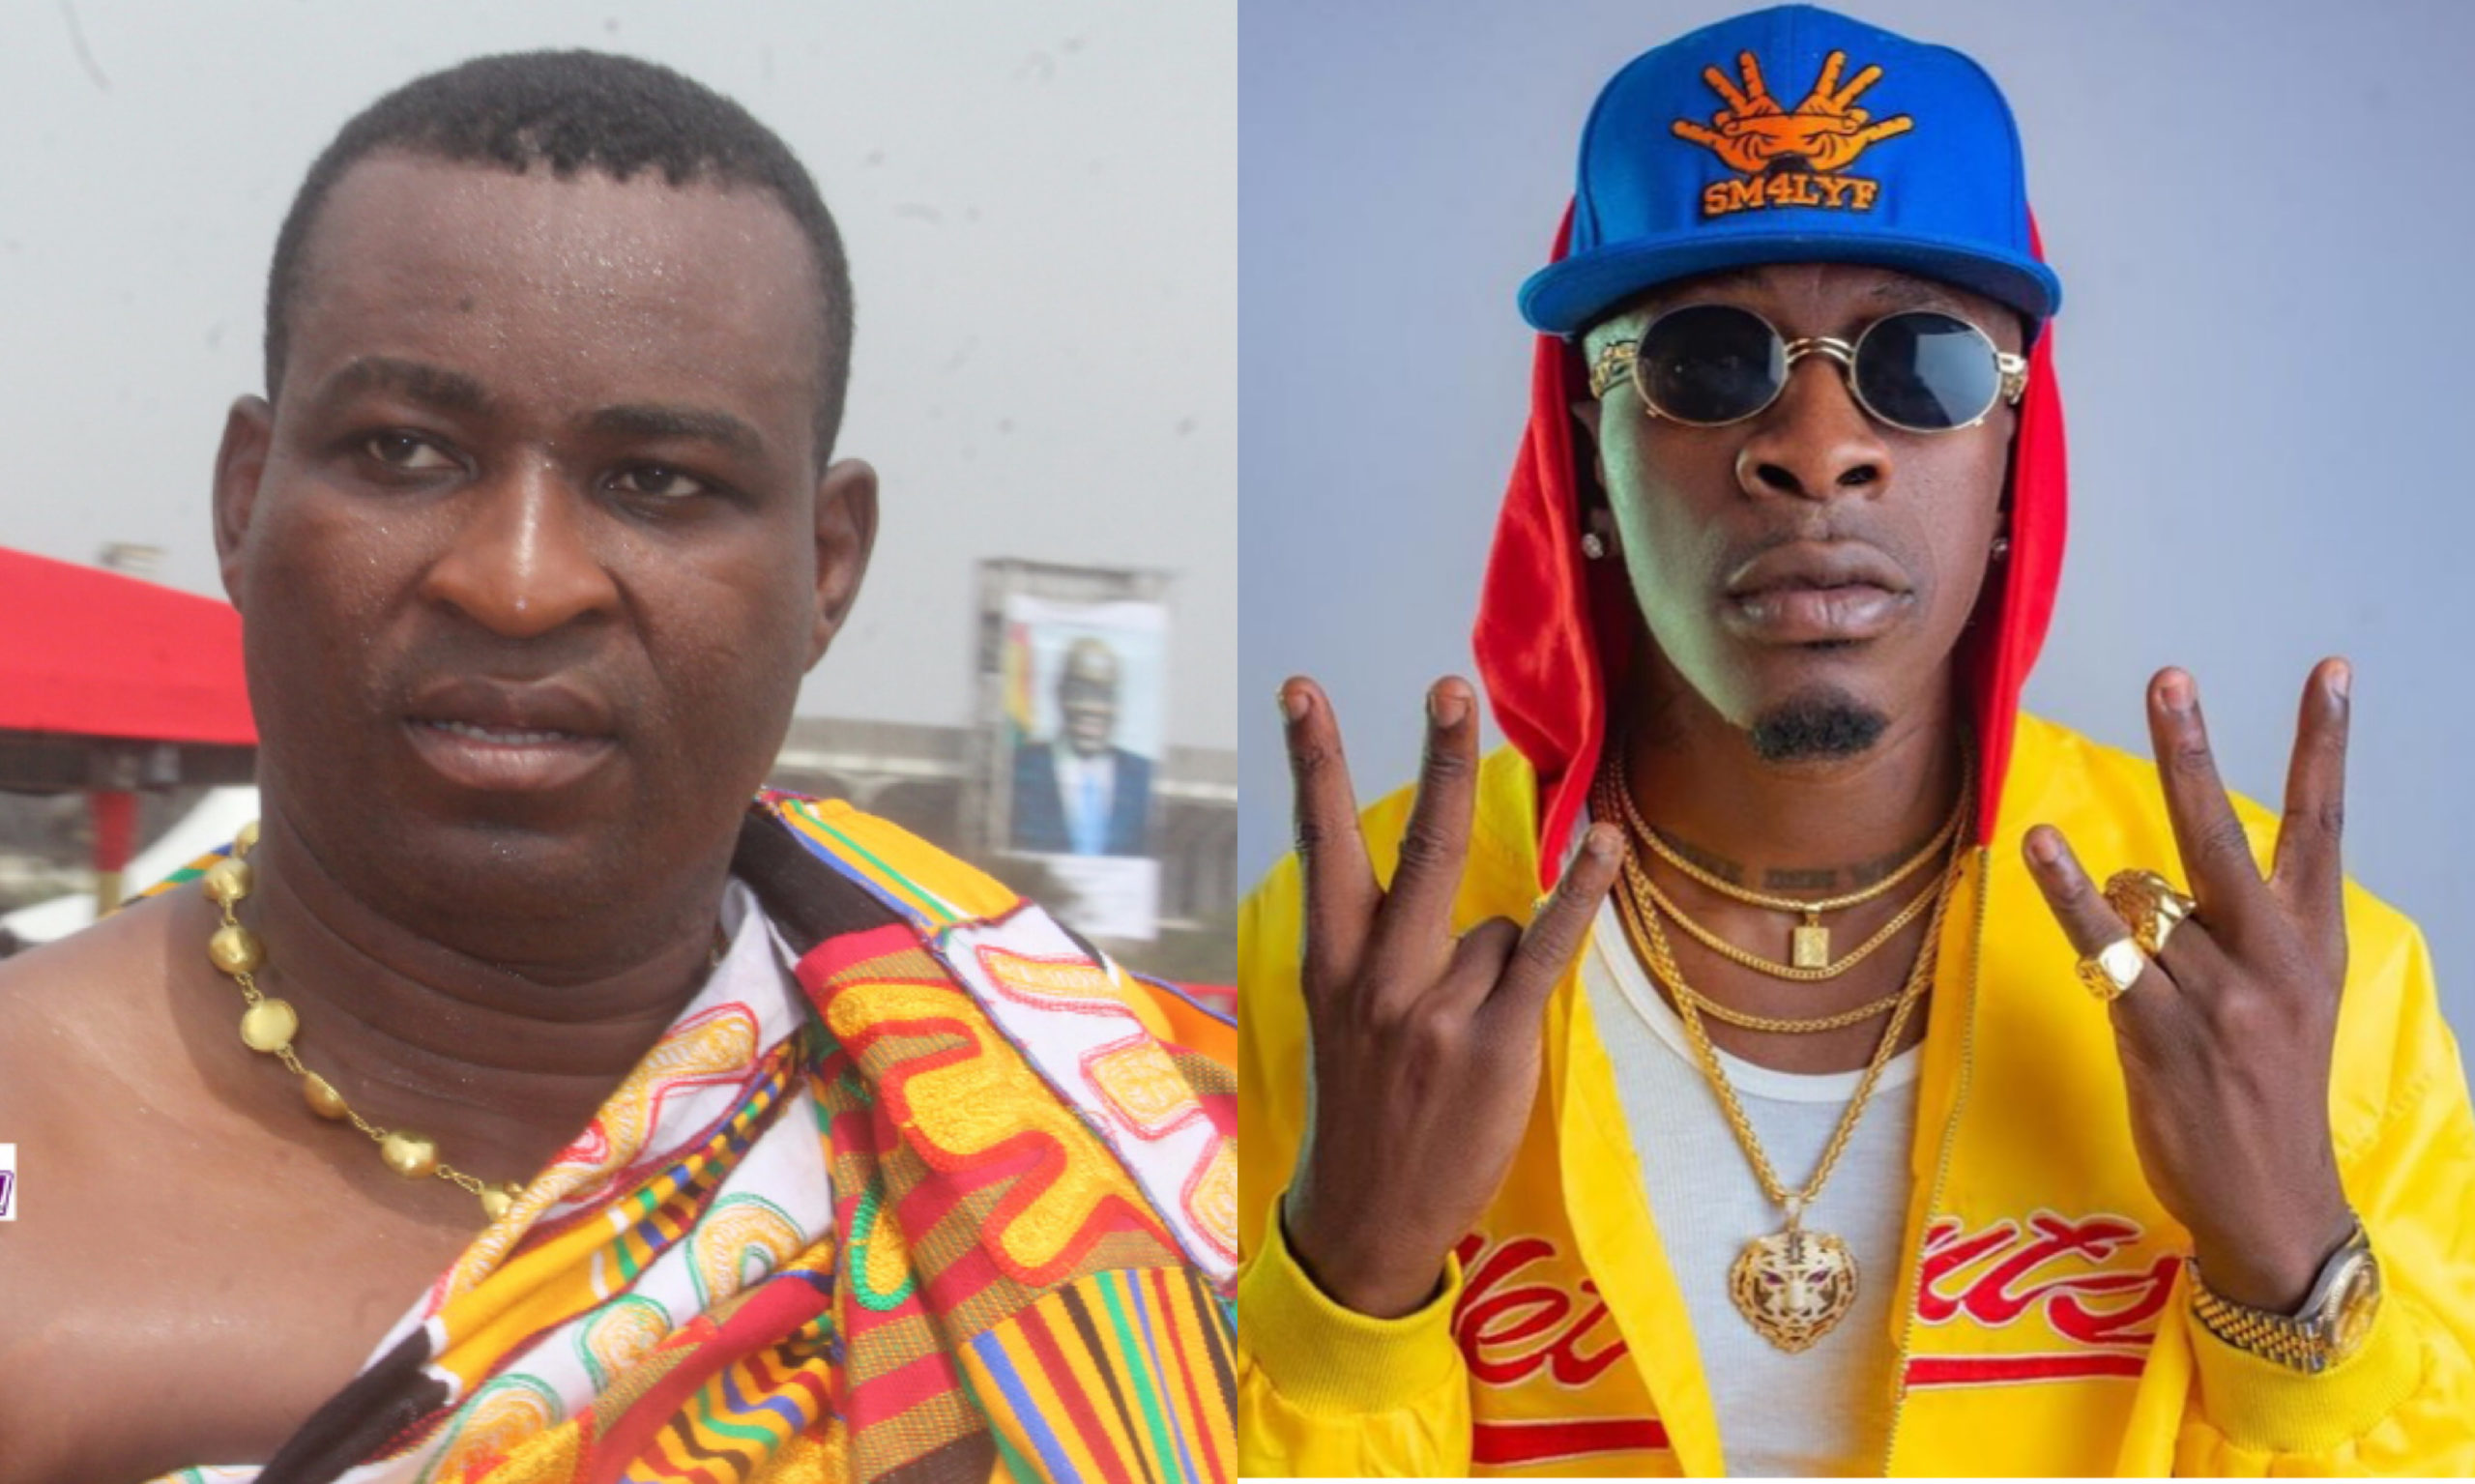 Shatta Wale features Chairman Wontumi on a new song titled 'Zion' 1